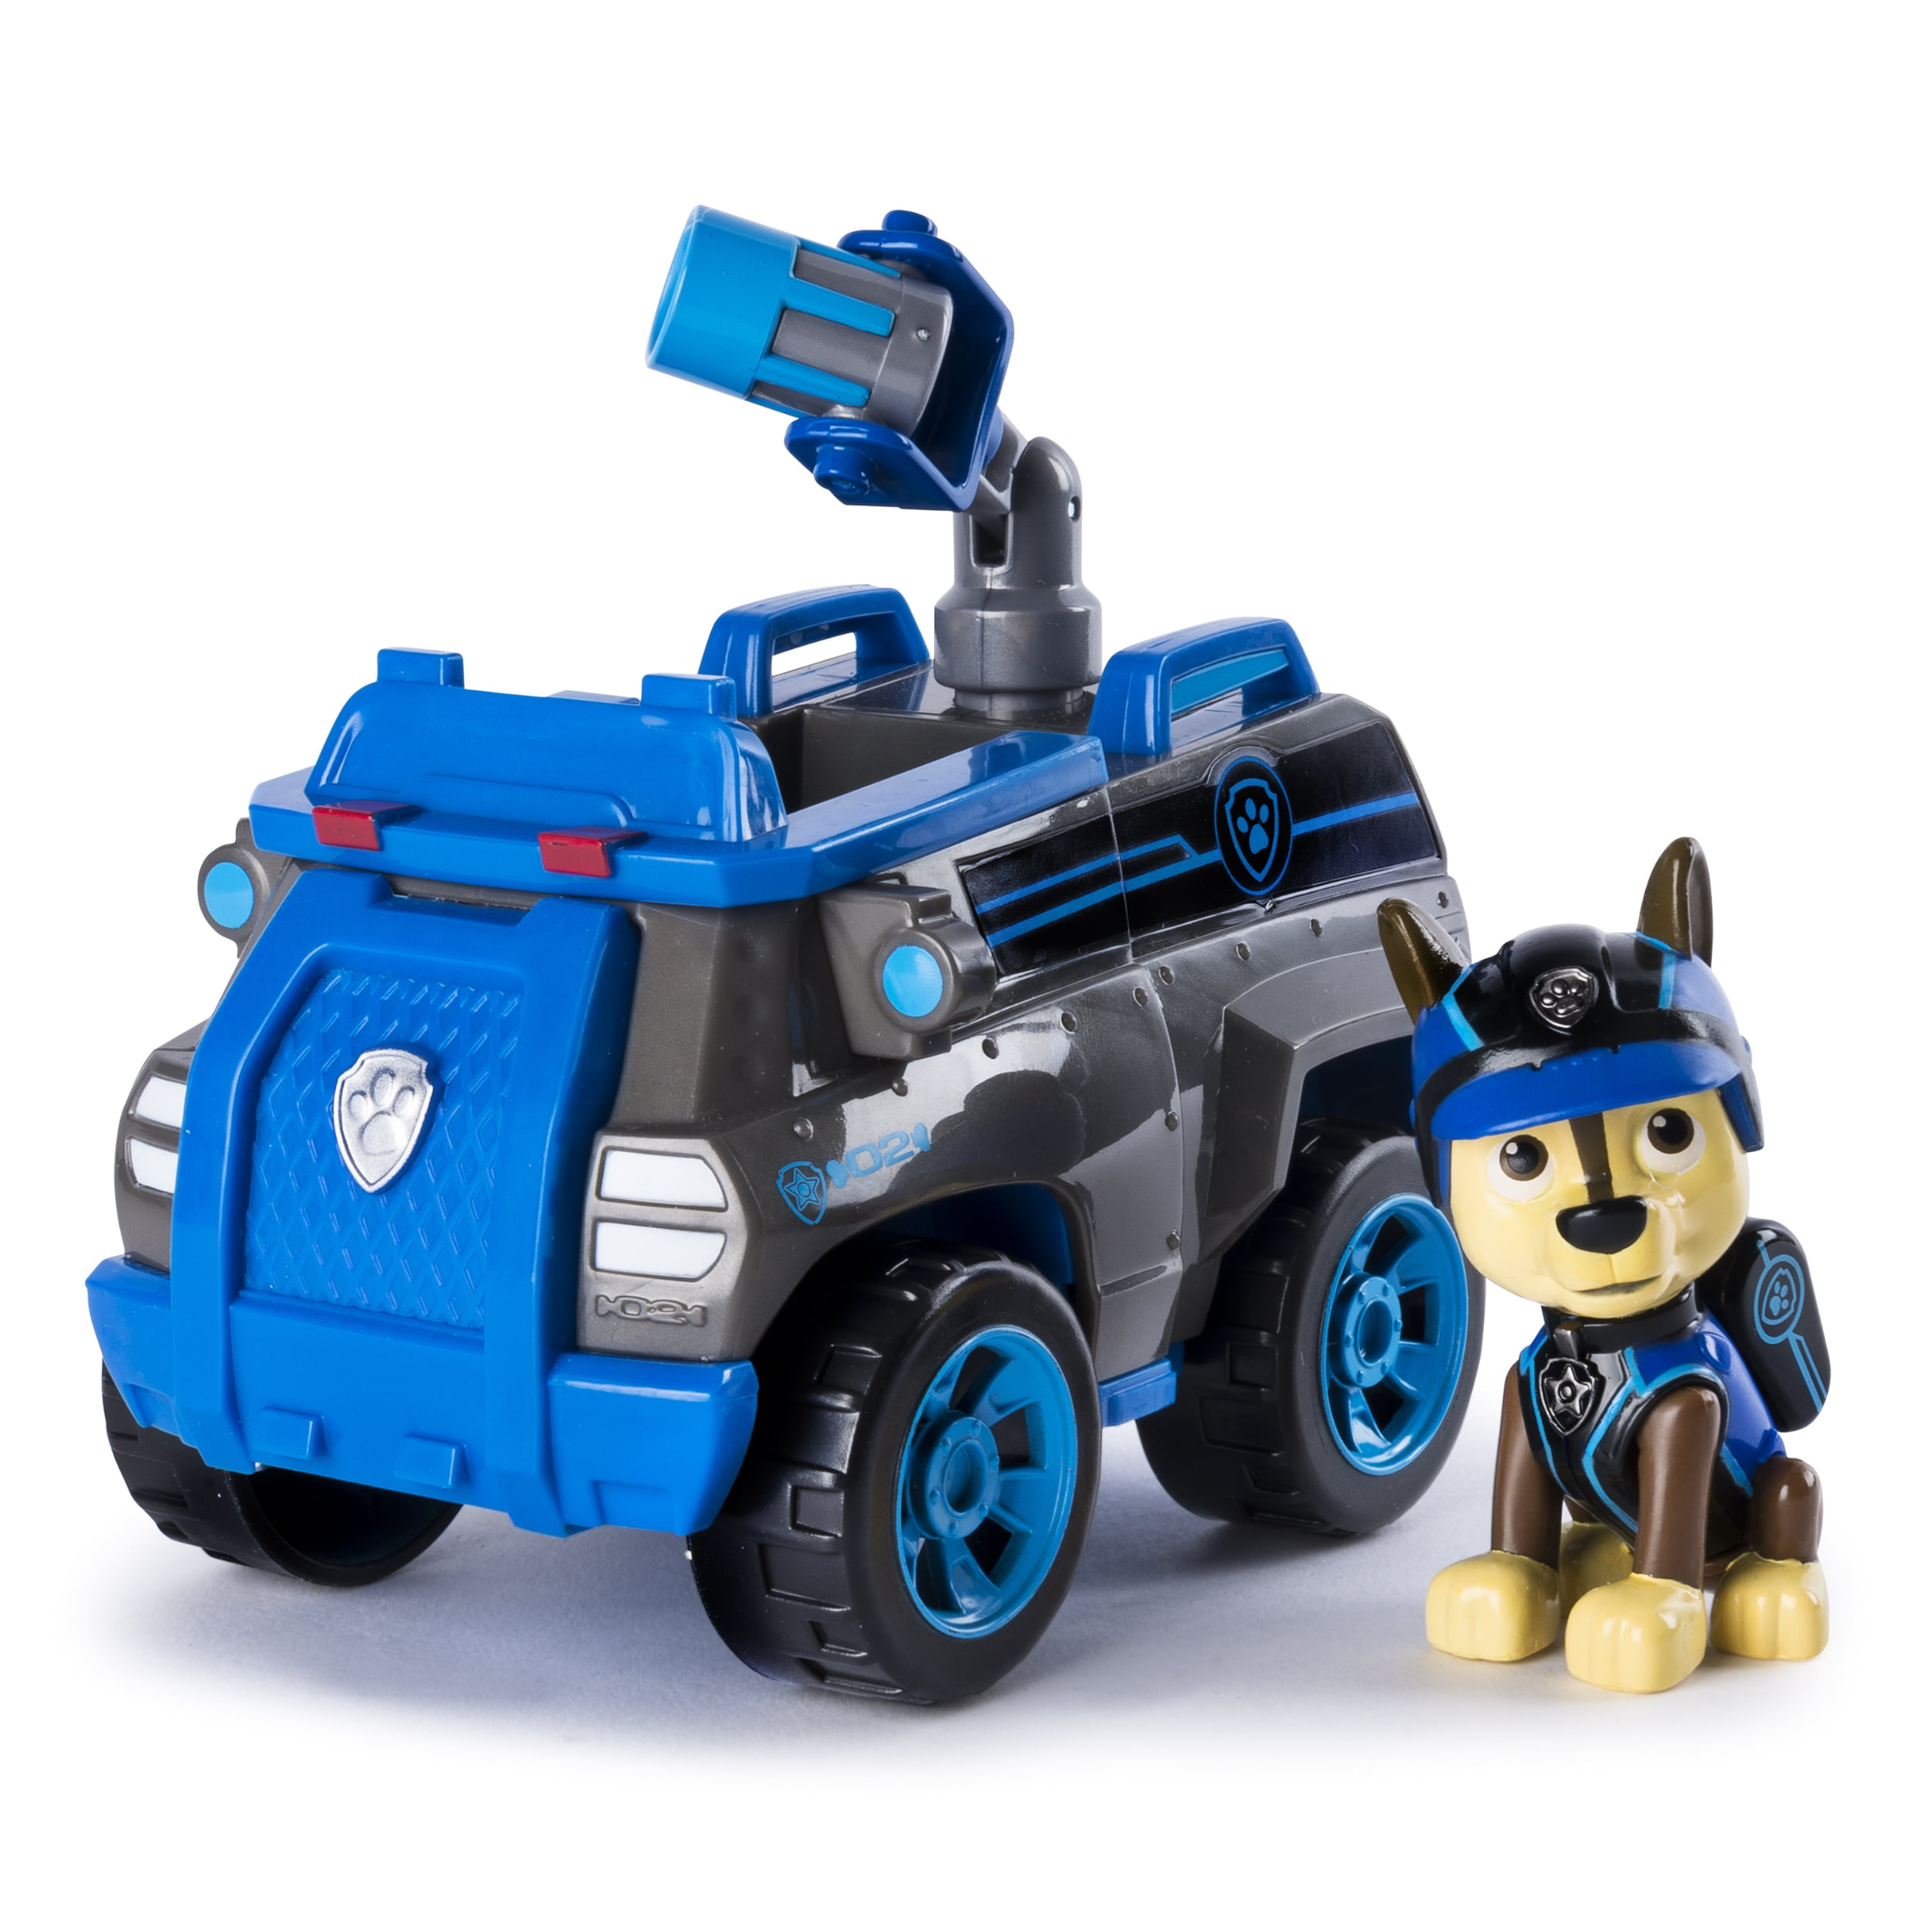 Paw Patrol Chase's Tow Truck Figure and Vehicle by Spin Master Ltd